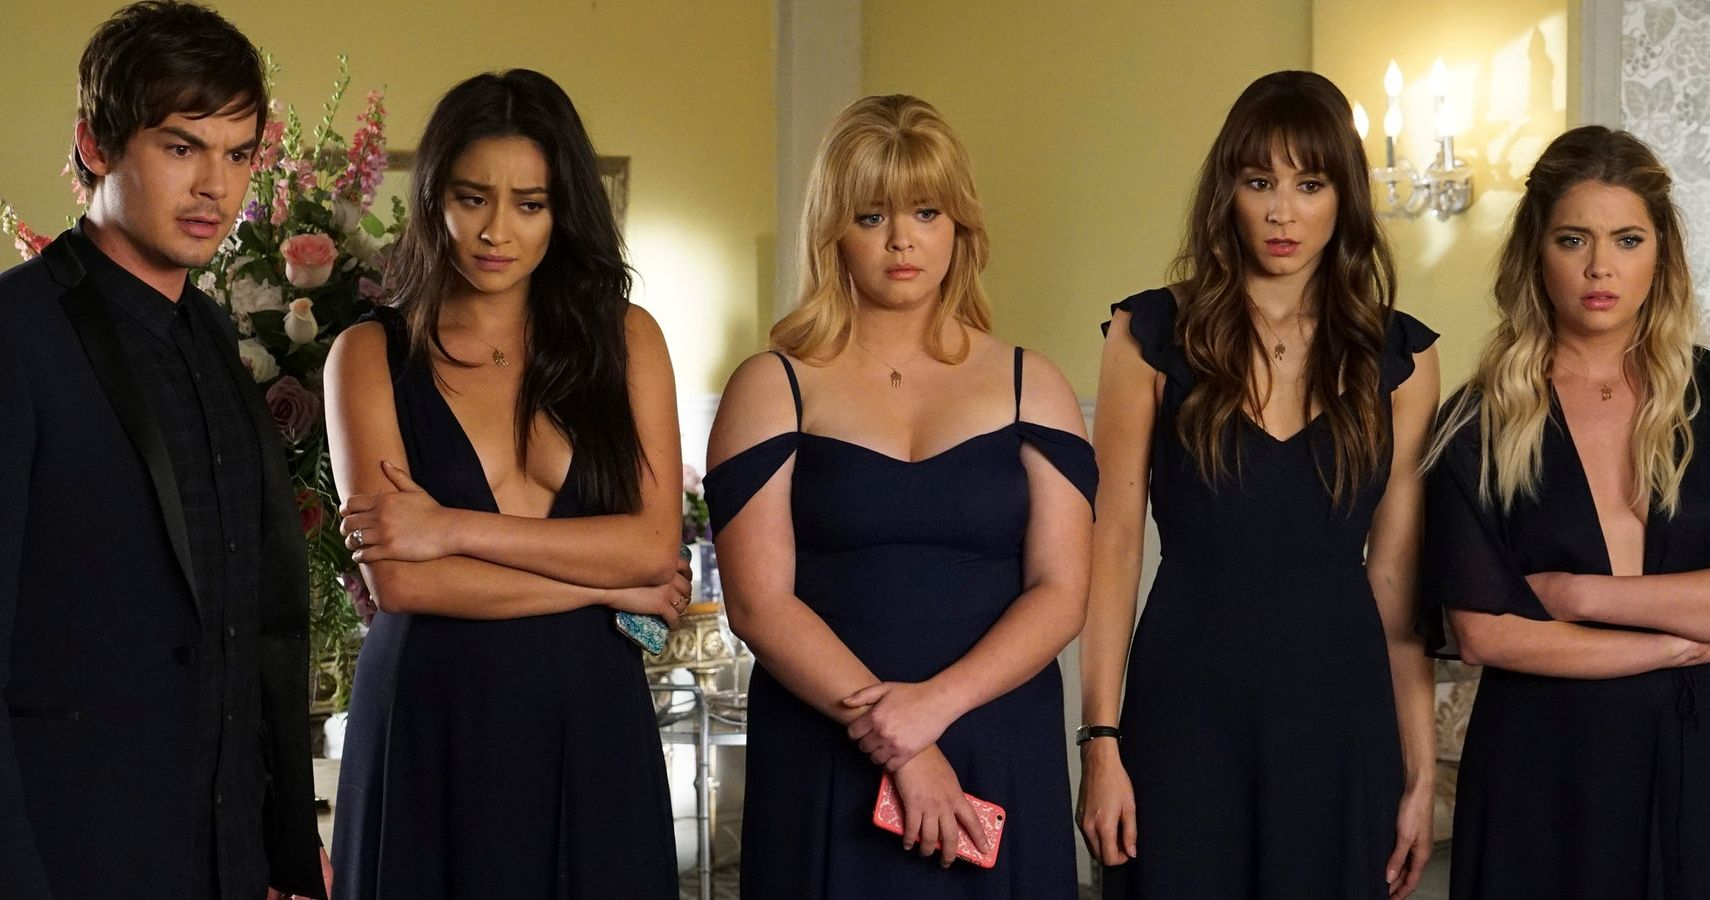 Liars pretty ages little actors How 'Pretty